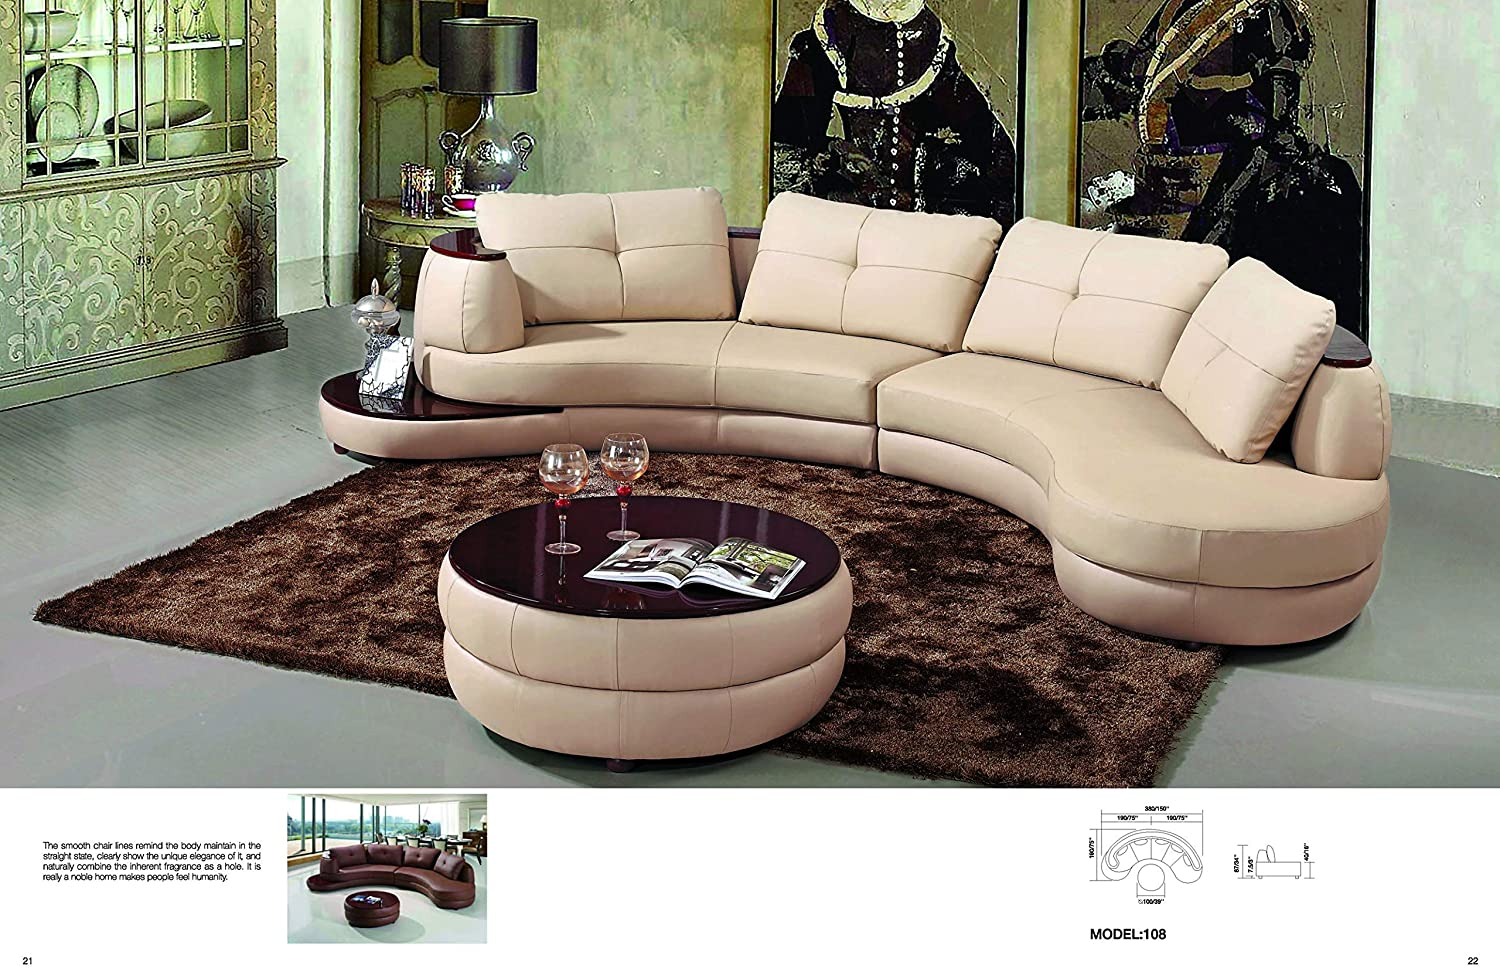 Amazon.com: My Aashis Vicenza Modern Beige Leather Sectional ...